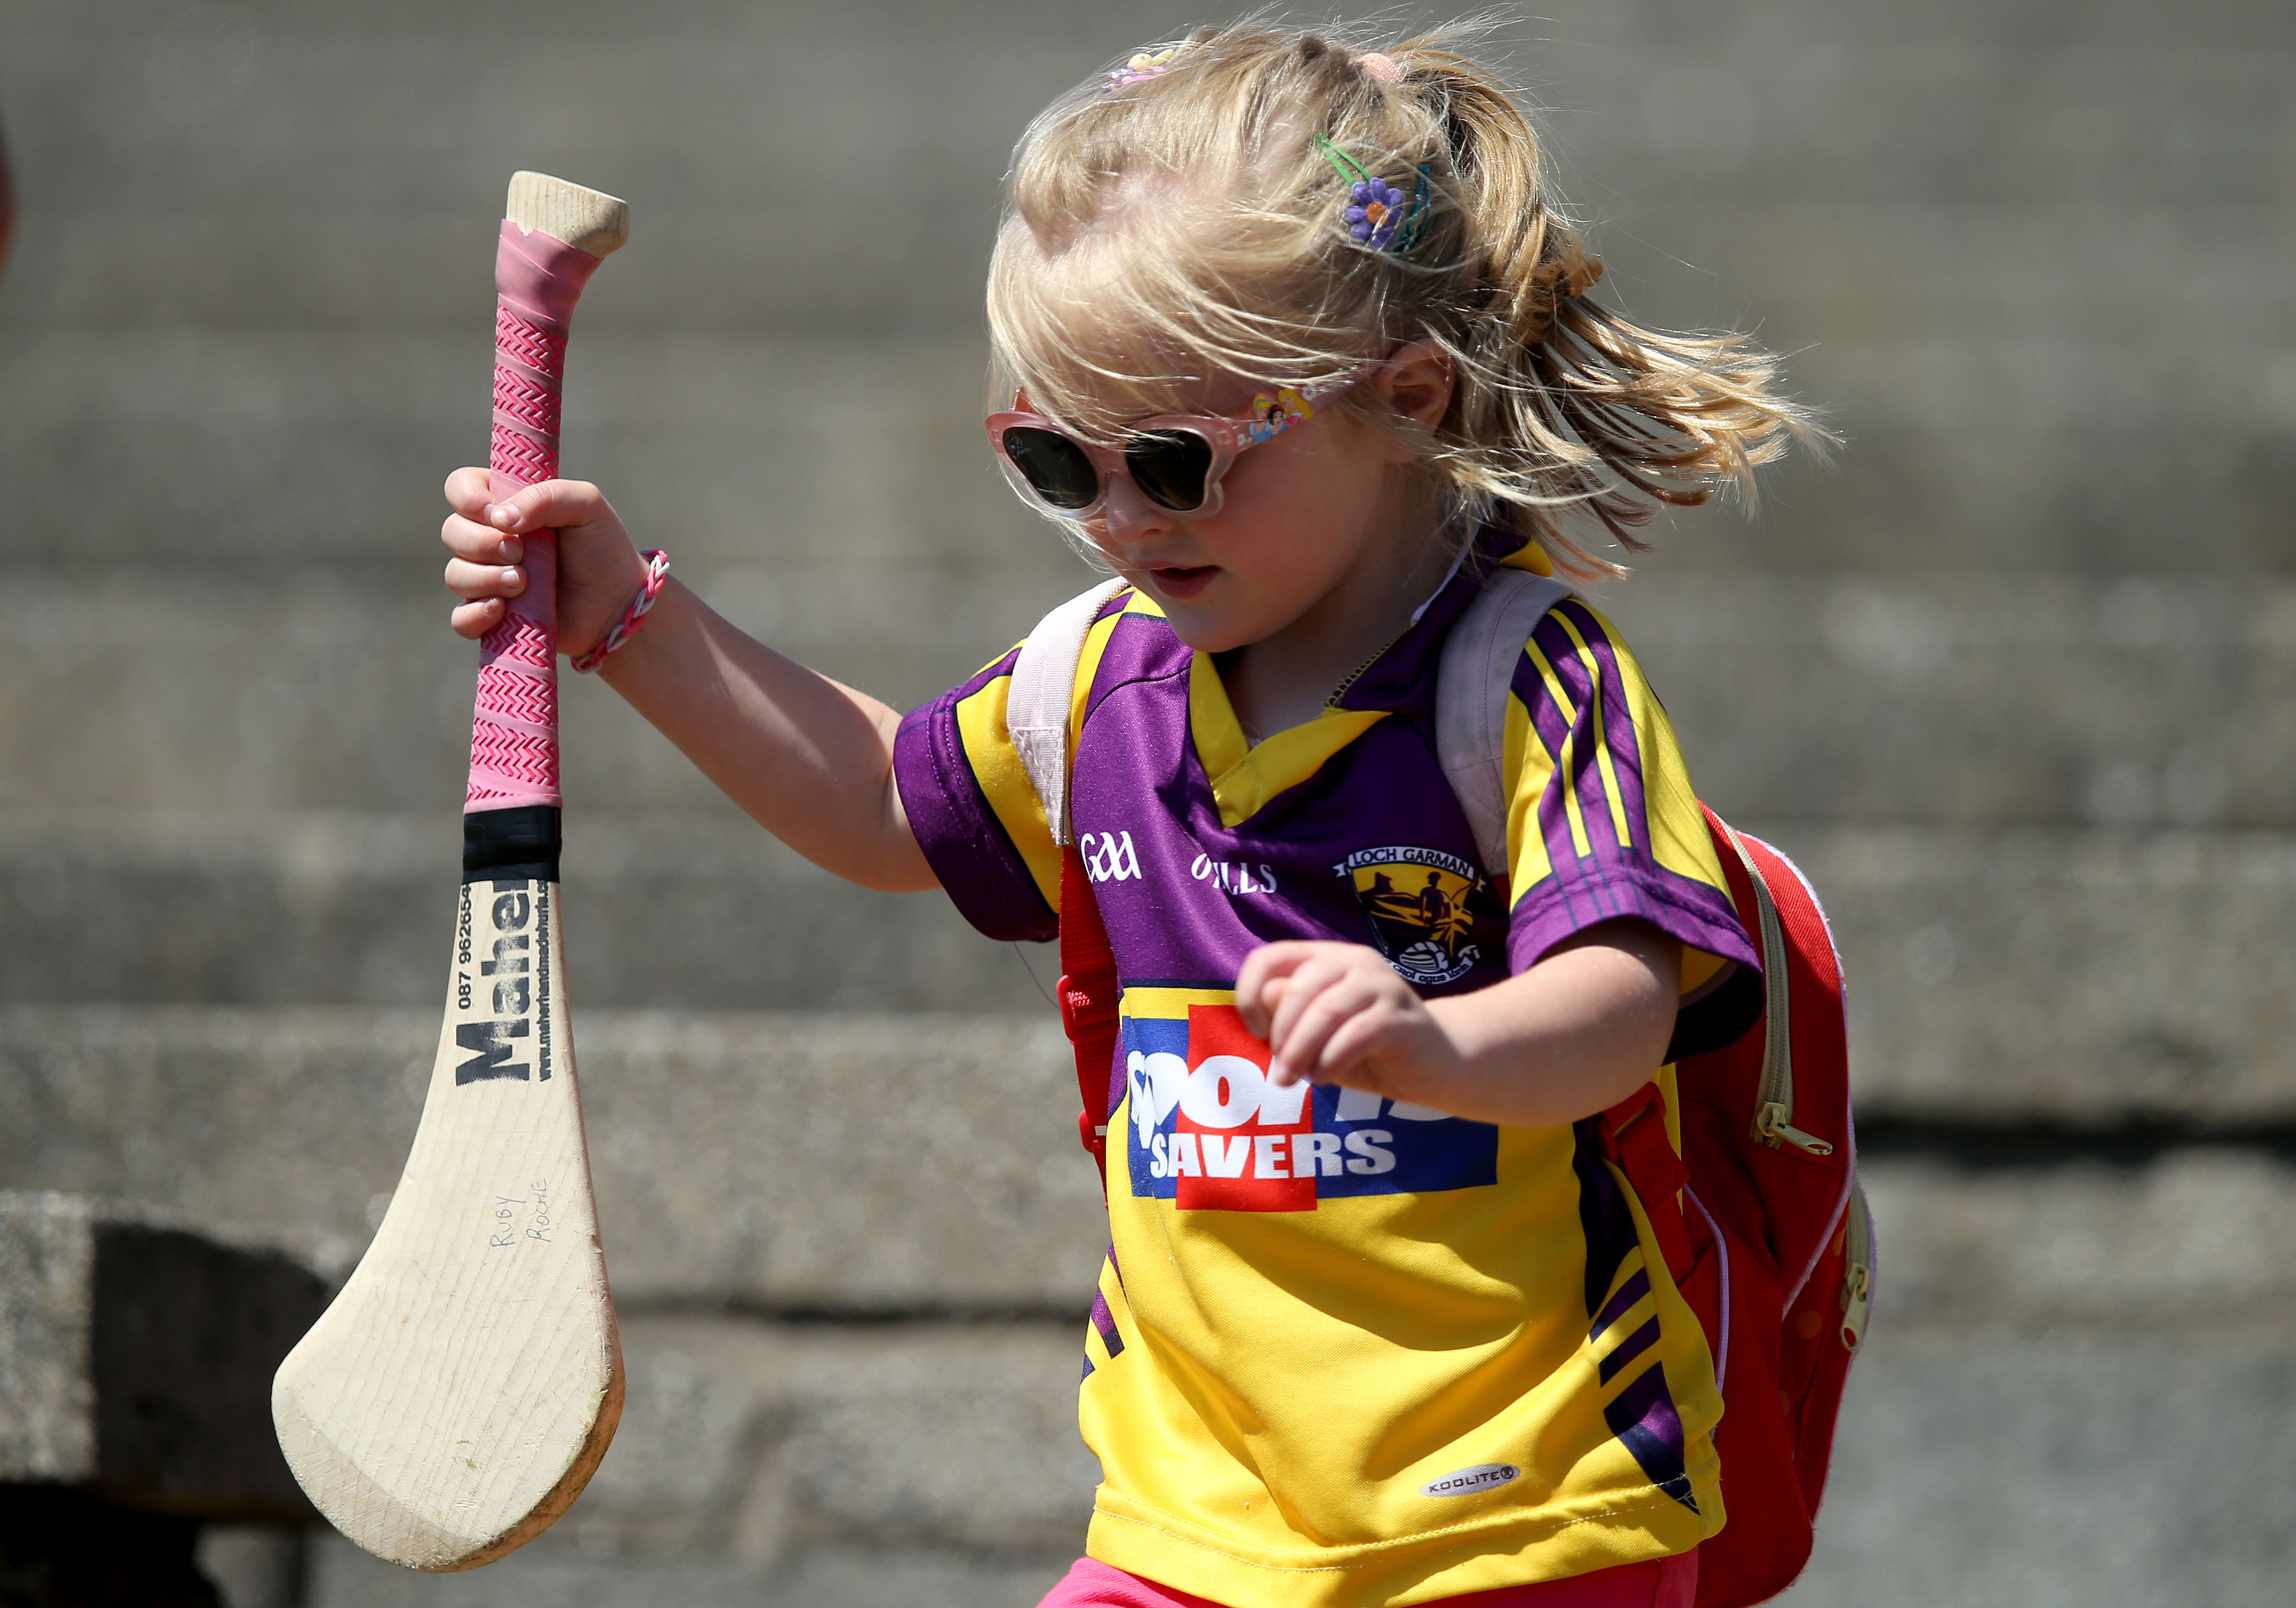 REPRO FREE***PRESS RELEASE NO REPRODUCTION FEE*** Liberty Insurance All Ireland Camogie Championship Group 1, Wexford Park, Wexford 5/7/2014 Wexford vs Cork A young Wexford fan at the game Mandatory Credit ©INPHO/Dan Sheridan